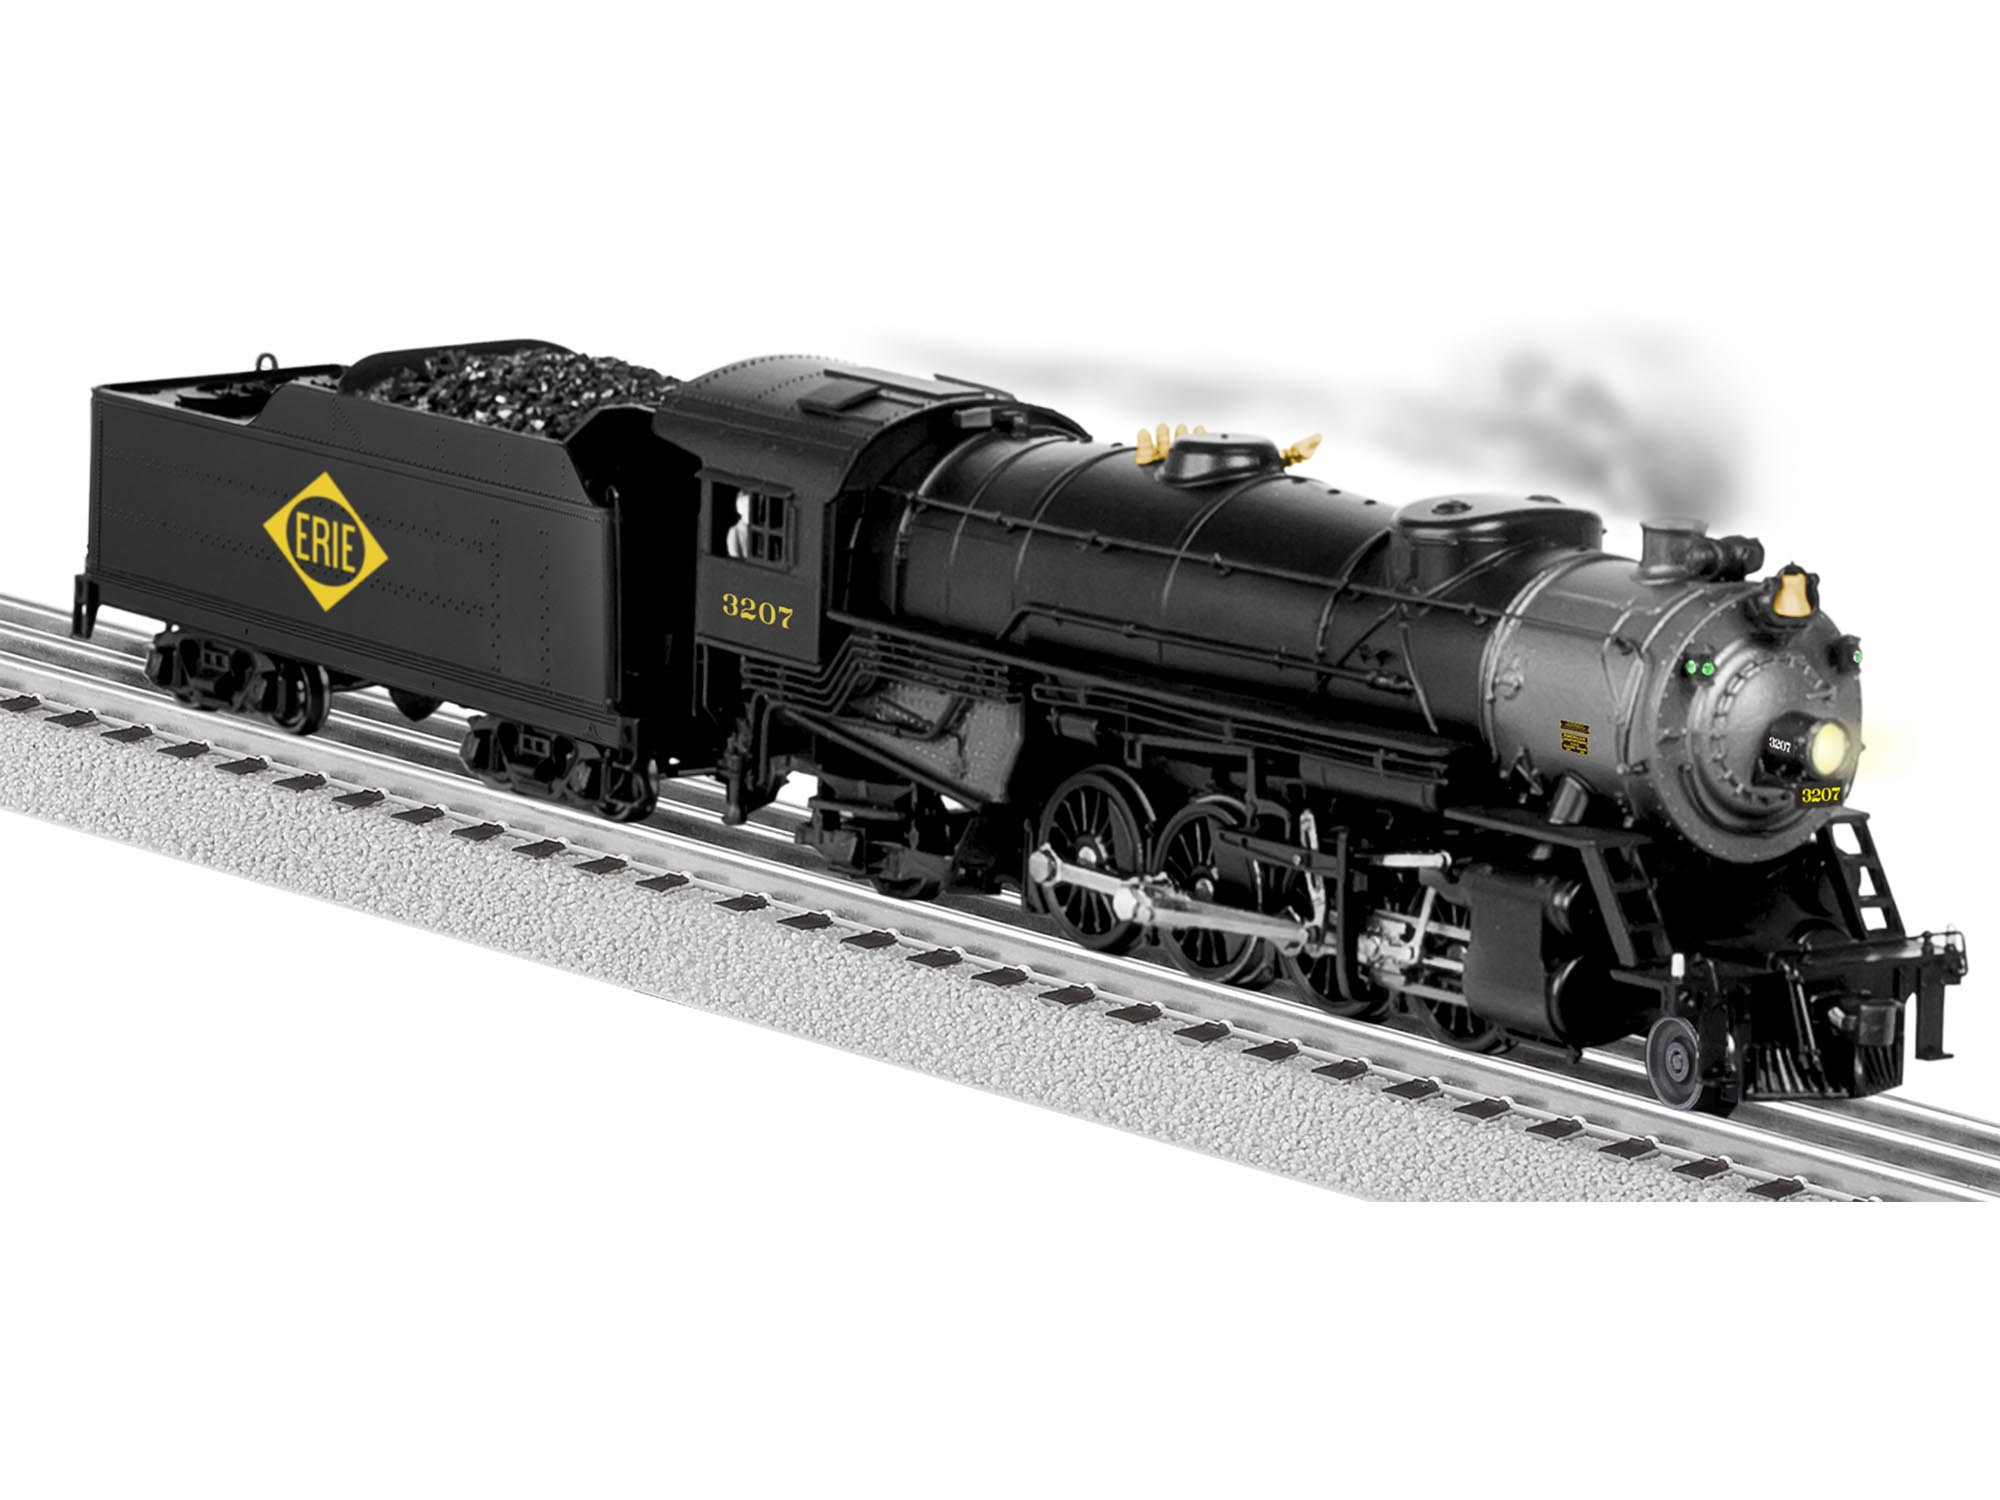 6-81191 ERIE LEGACY MIKADO 2-8-2 STEAM LOCOMOTIVE #3207